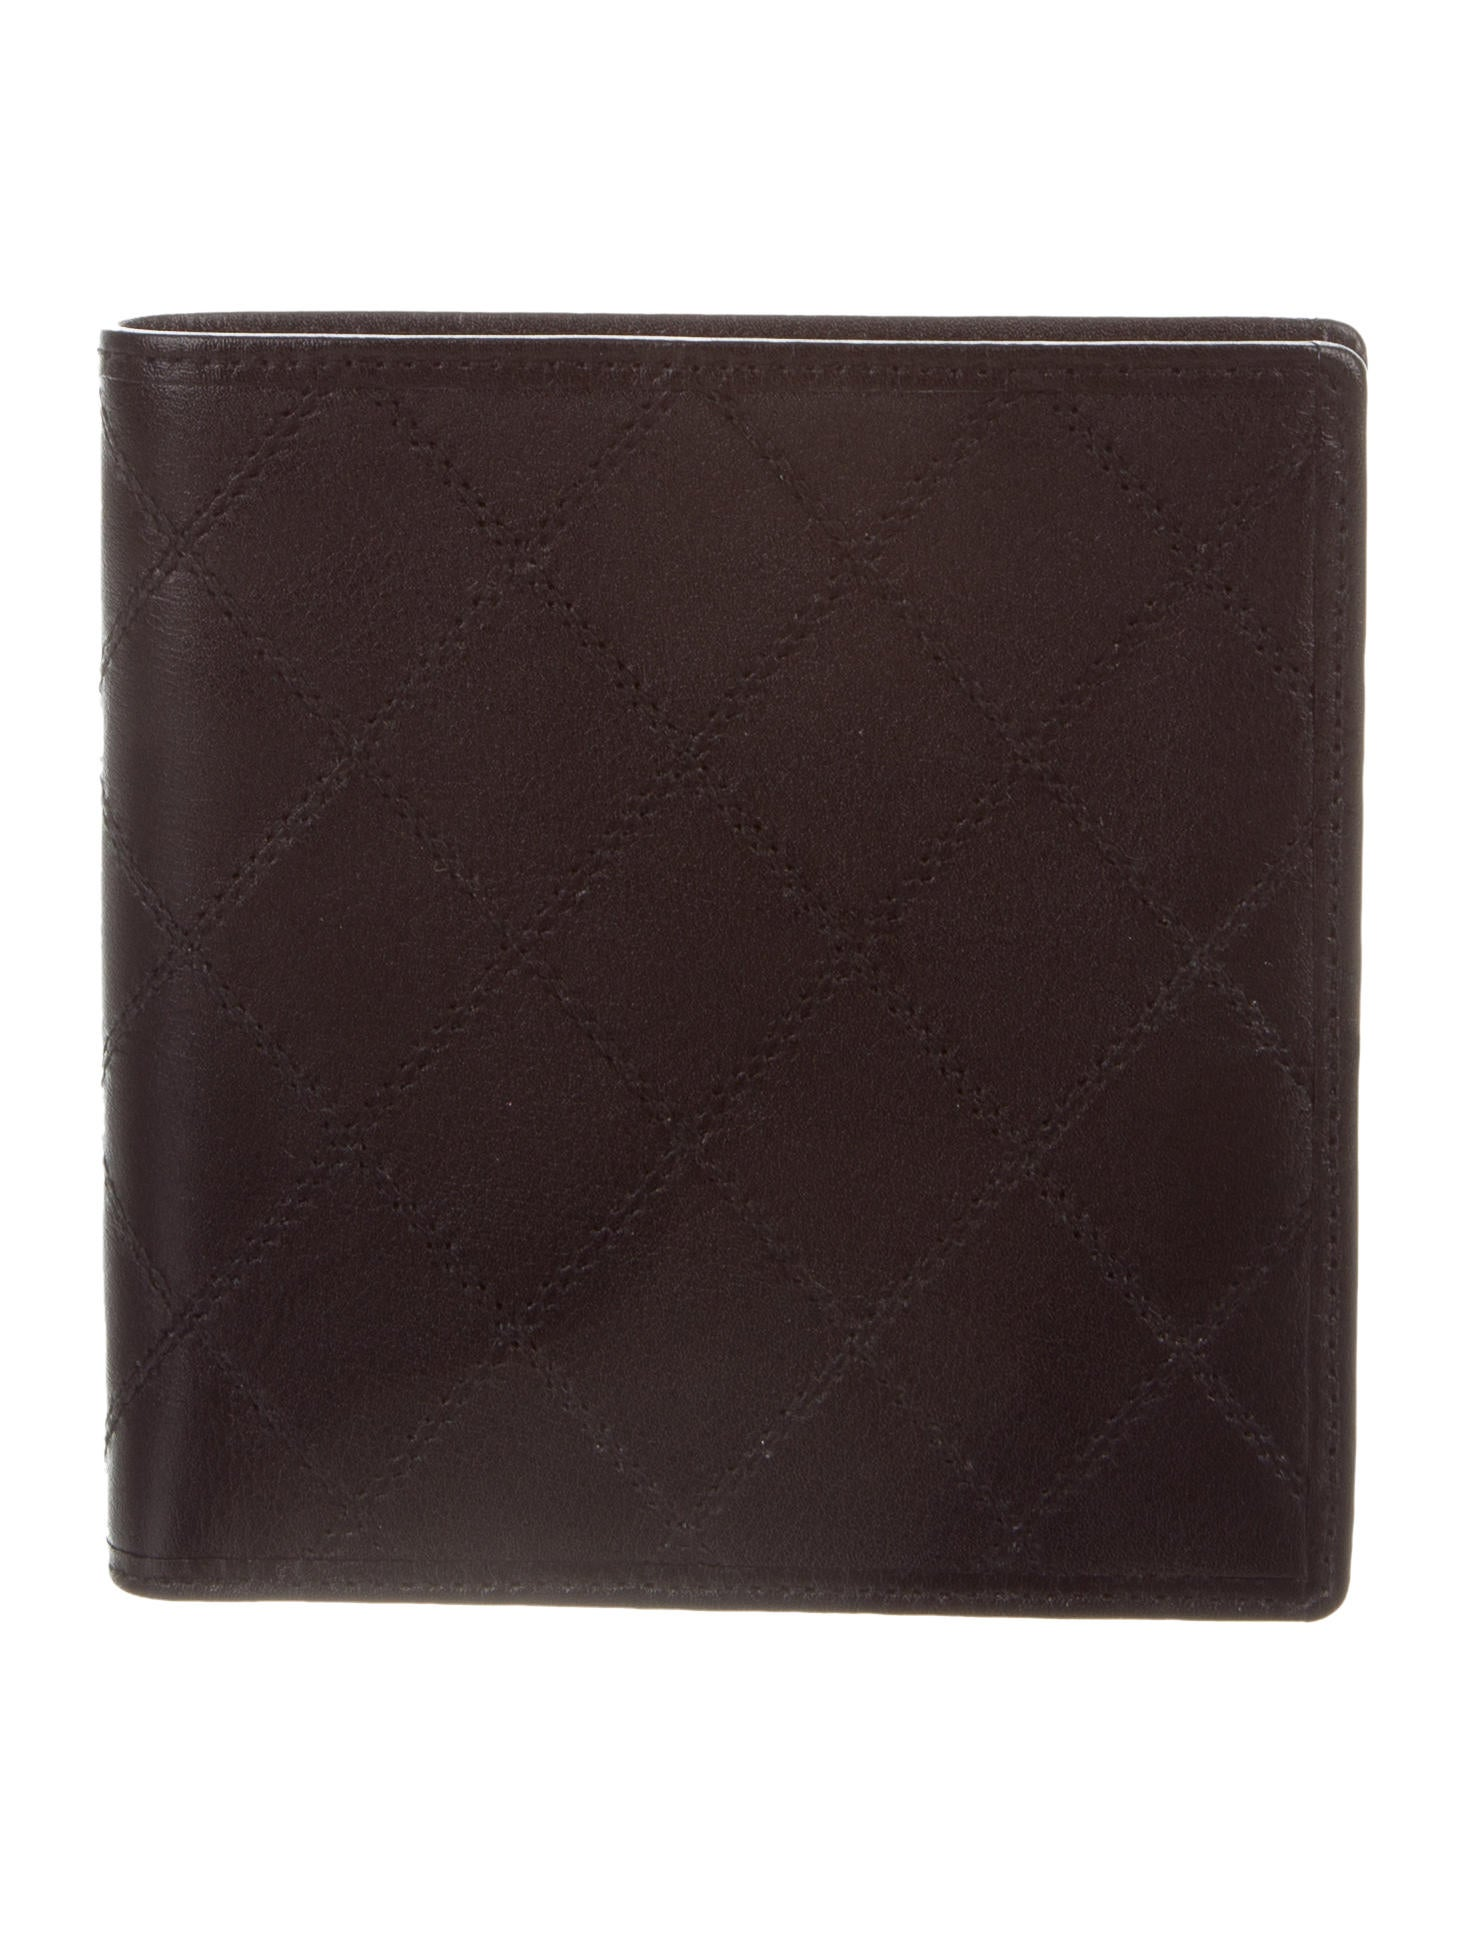 Chanel Vintage Diamond Quilt Wallet - Accessories ...